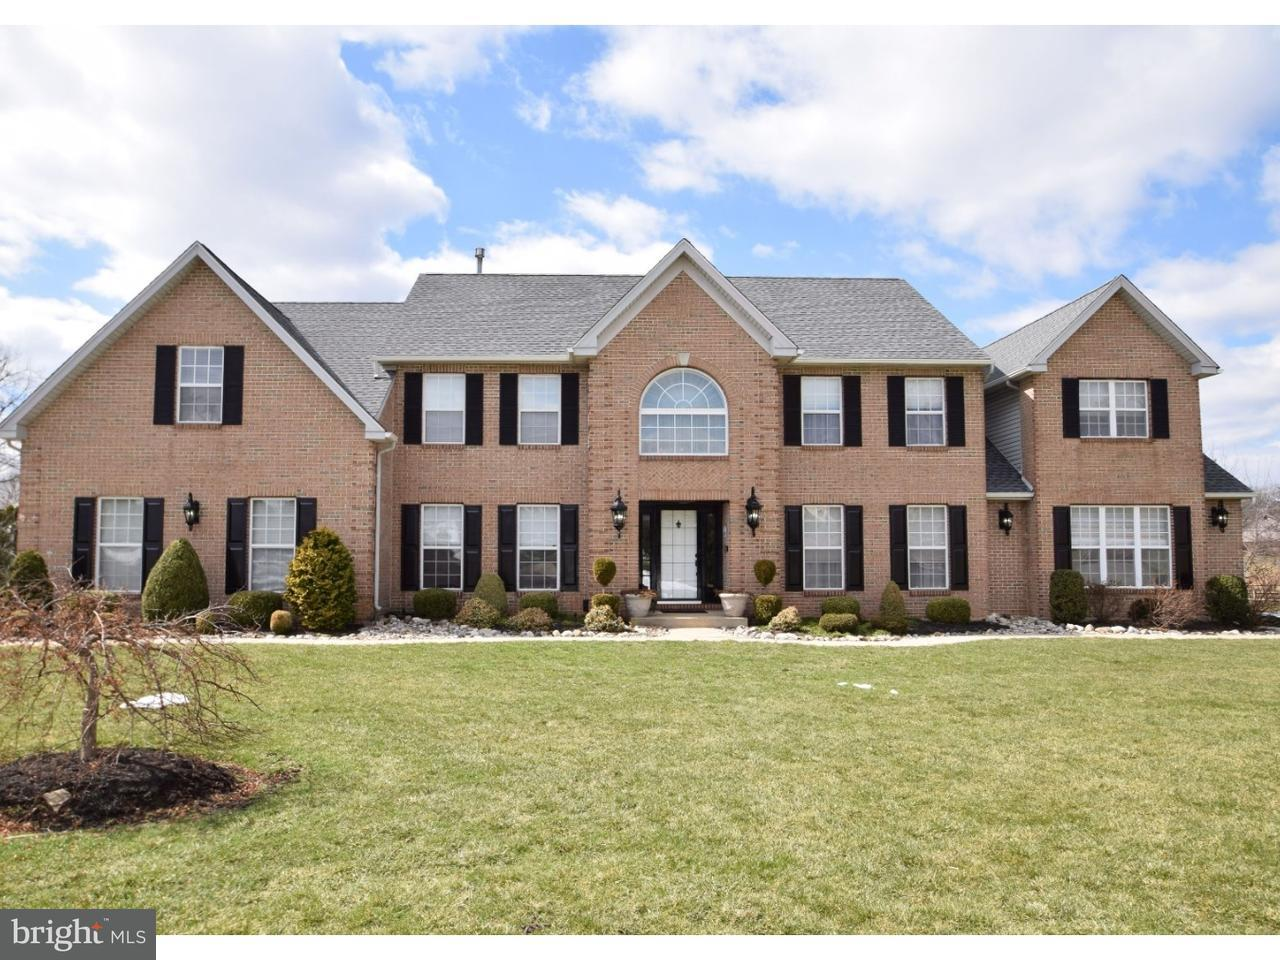 Single Family Home for Sale at 762 GRISSOM Drive Lansdale, Pennsylvania 19446 United States